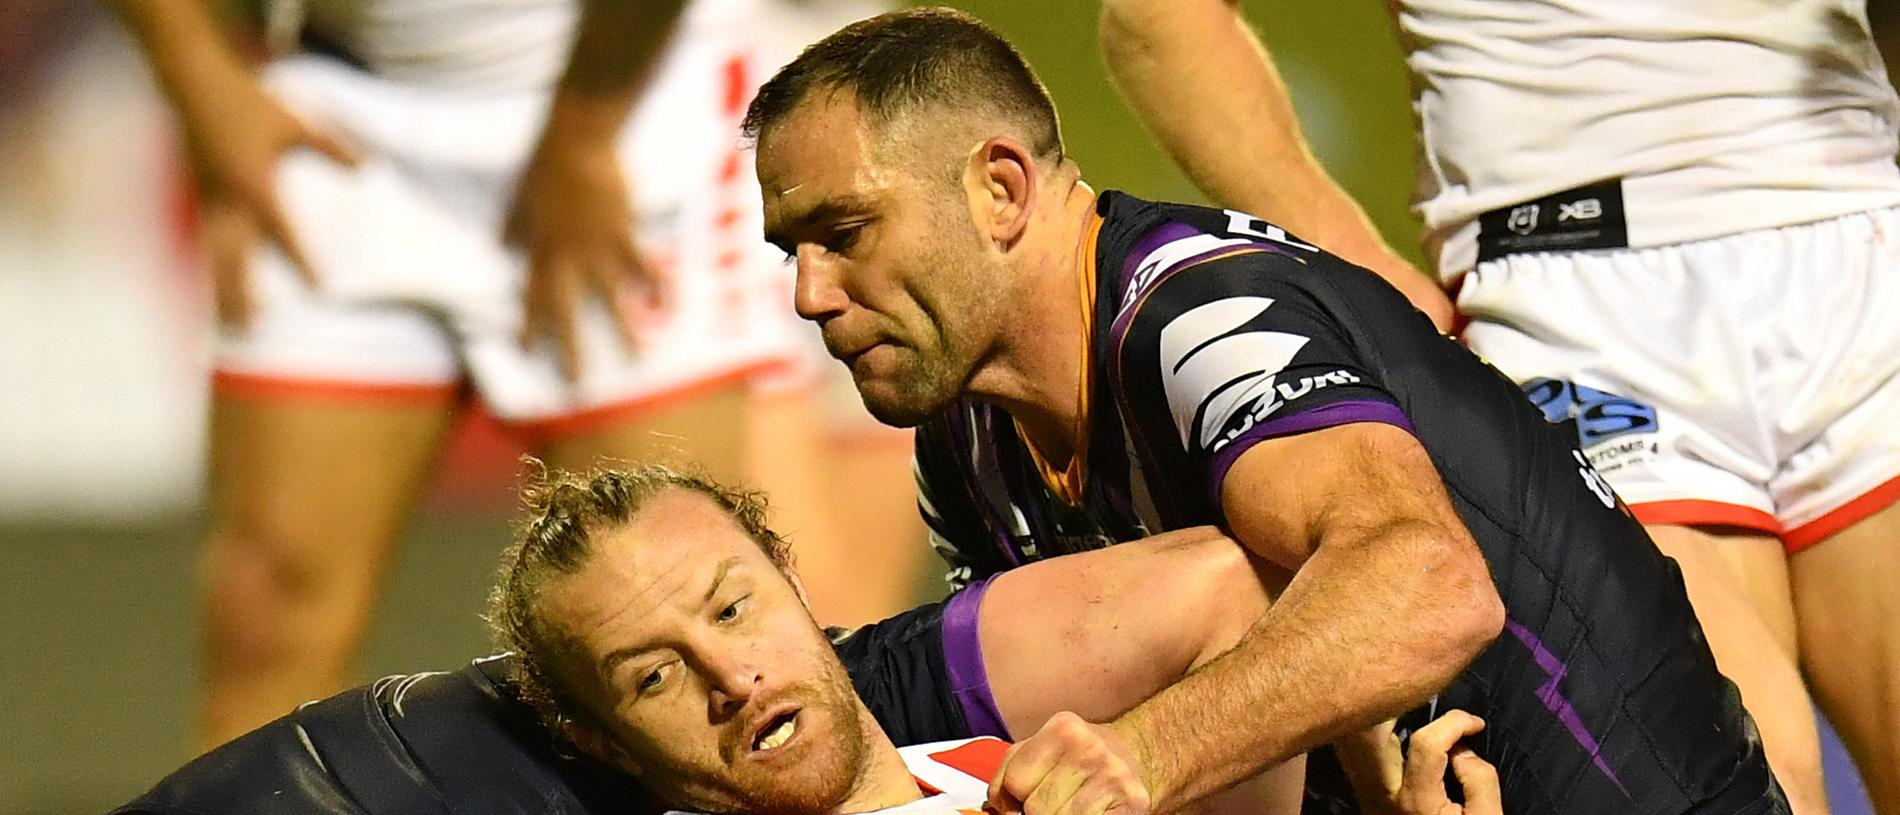 Korbin Sims of the Dragons is tackled by Cameron Smith of the Storm during the Round 16 NRL match between the St George Illawarra Dragons and Melbourne Storm at WIN Stadium in Wollongong, Thursday, July 4, 2019. (AAP Image/Dean Lewins) NO ARCHIVING, EDITORIAL USE ONLY